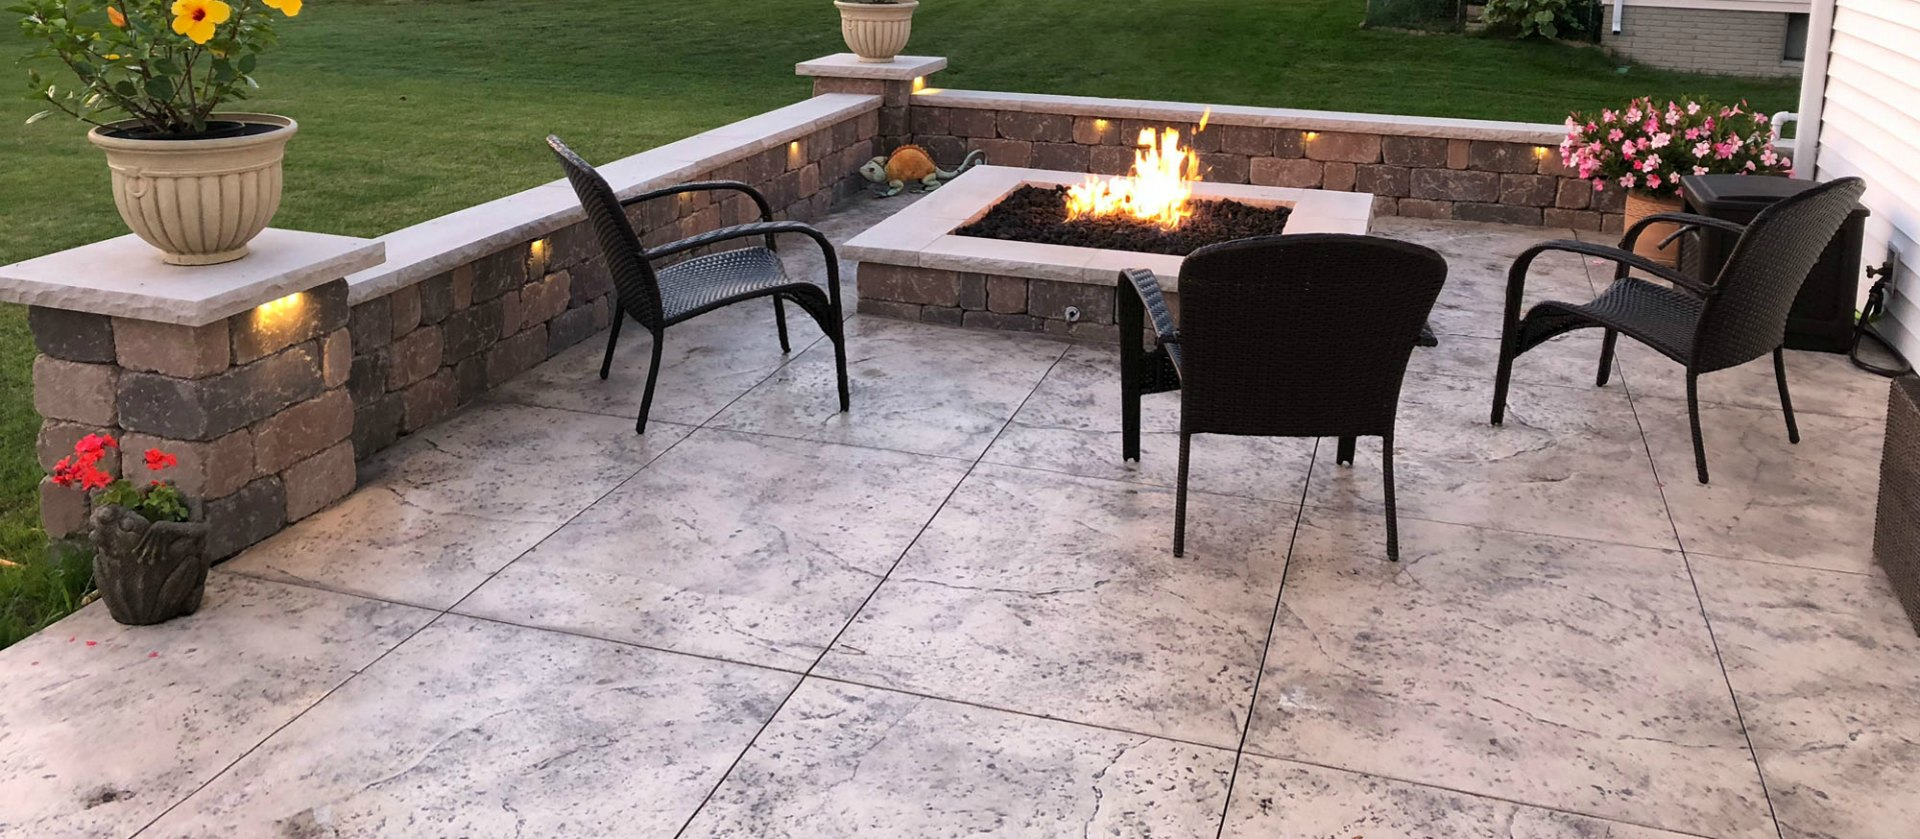 Decorative Concrete Experts